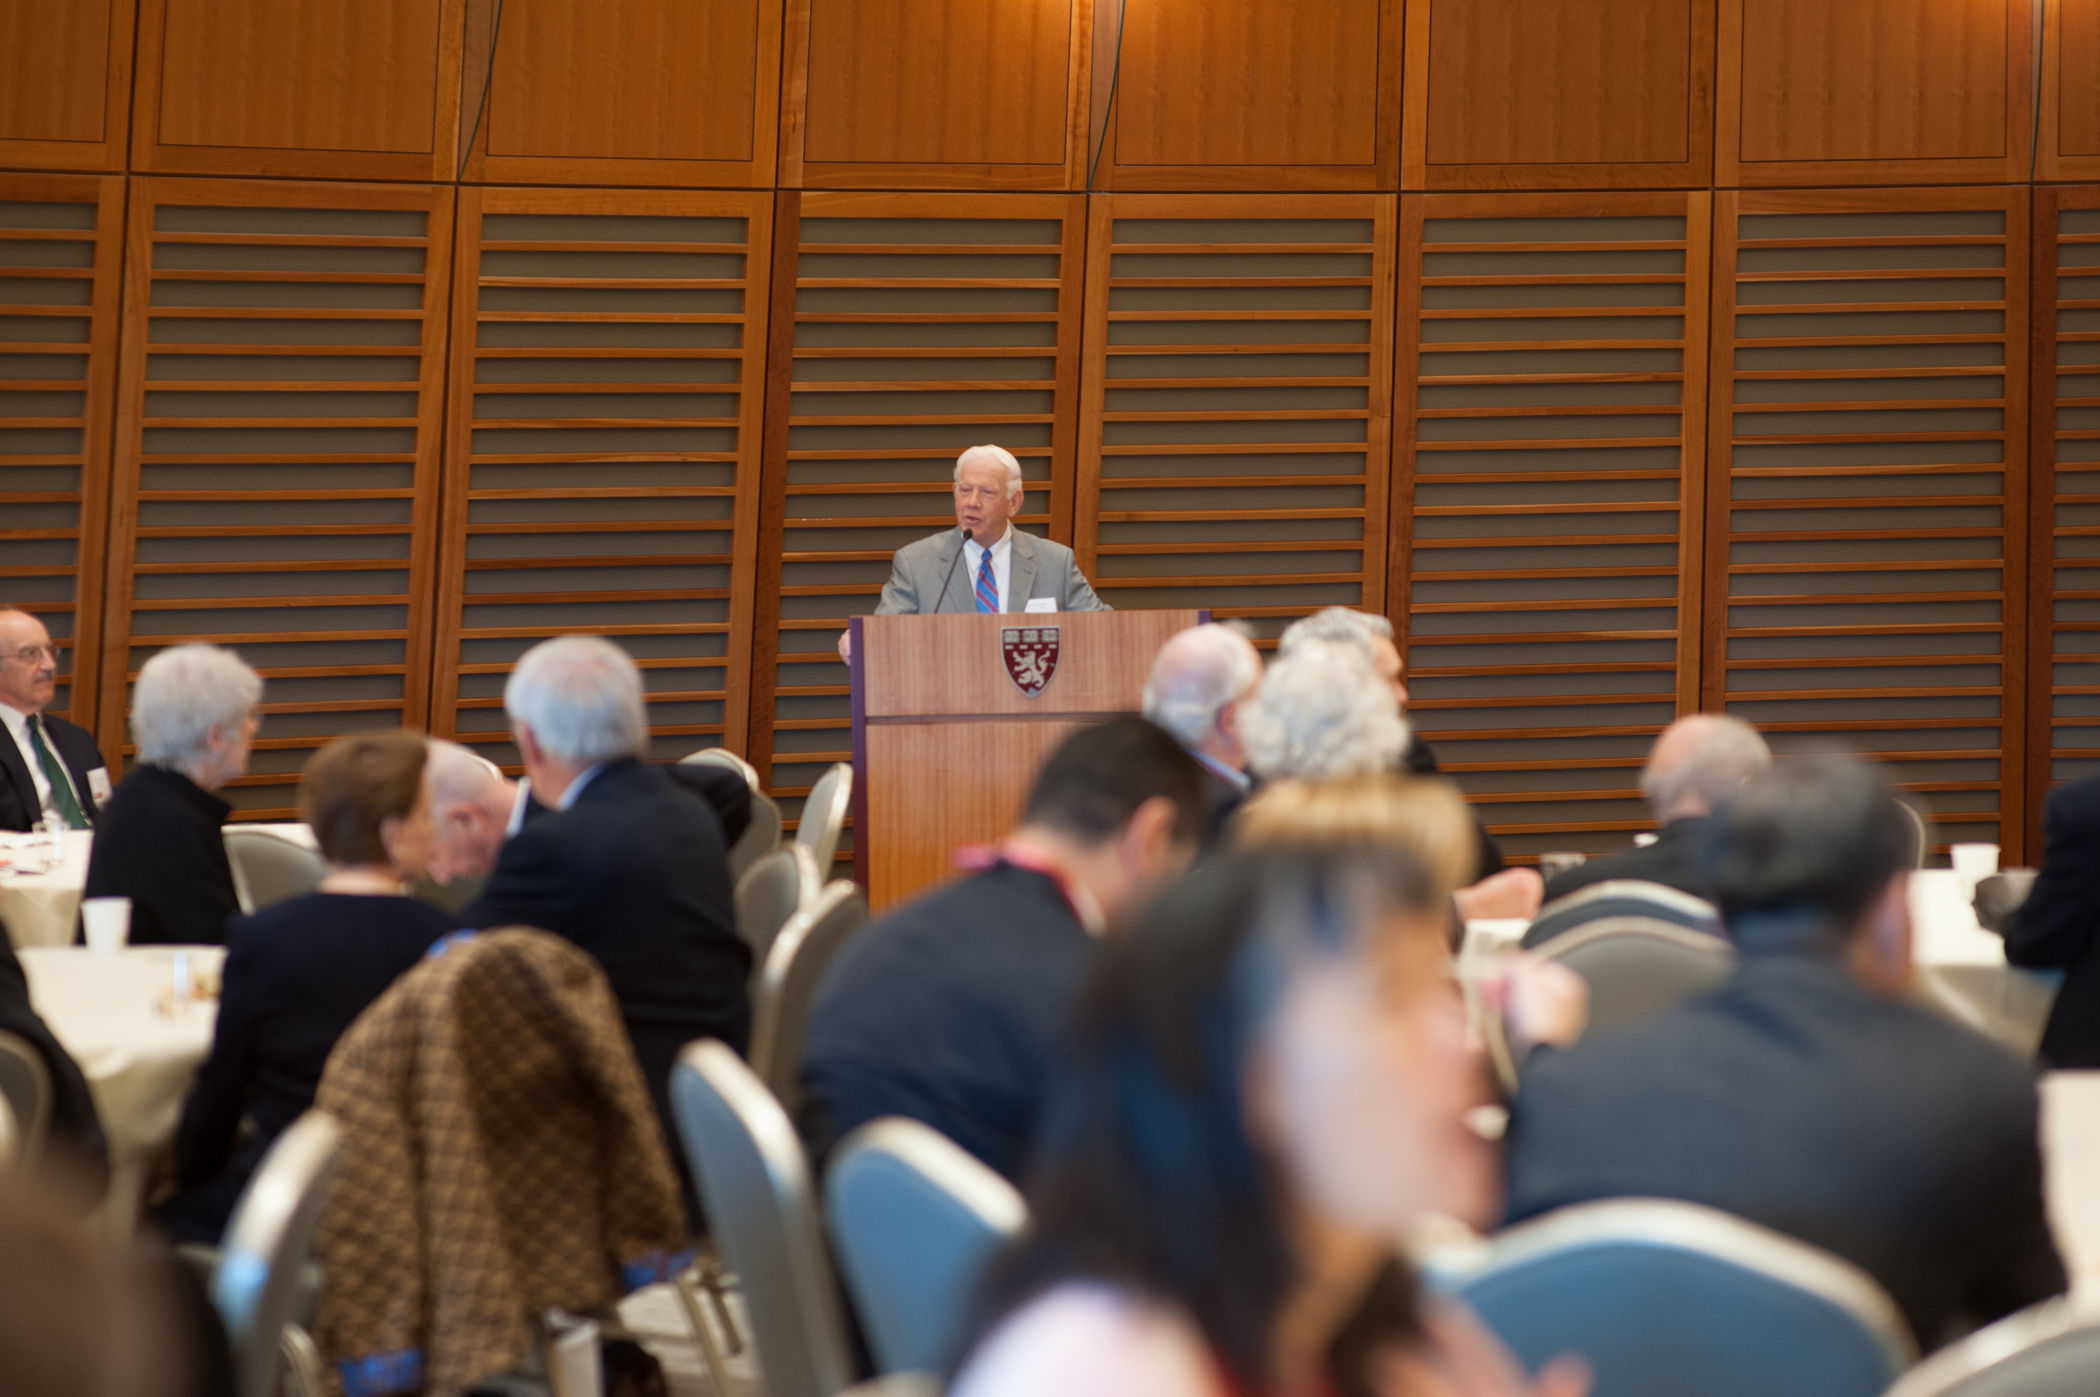 Chair of Alumni Relations, A.W. Karchmer, MD '64, expresses his gratitude to Reunion Committee members